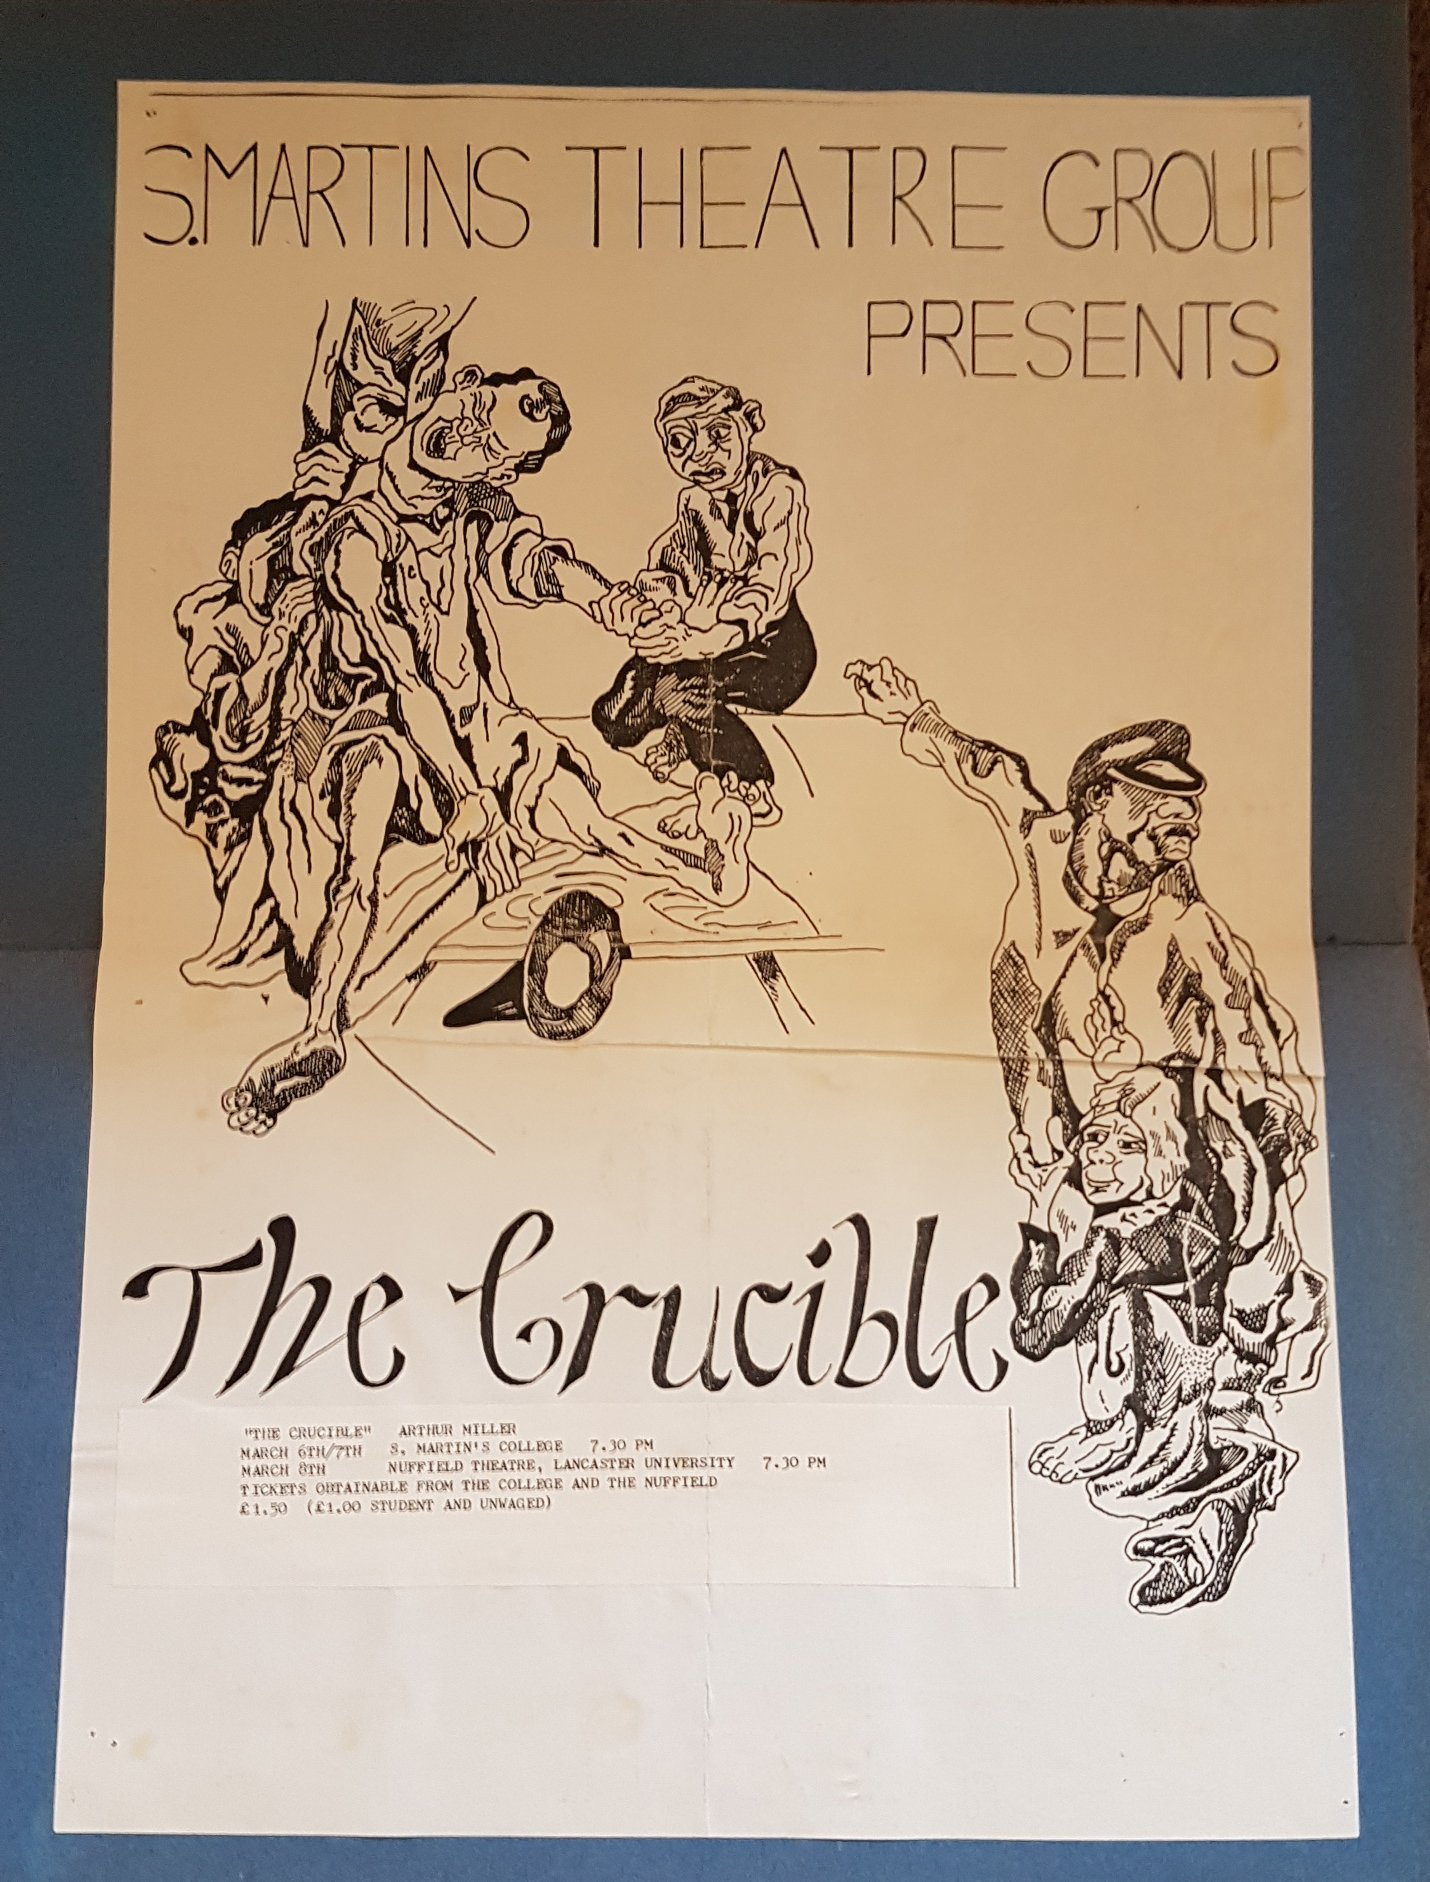 The Crucible play